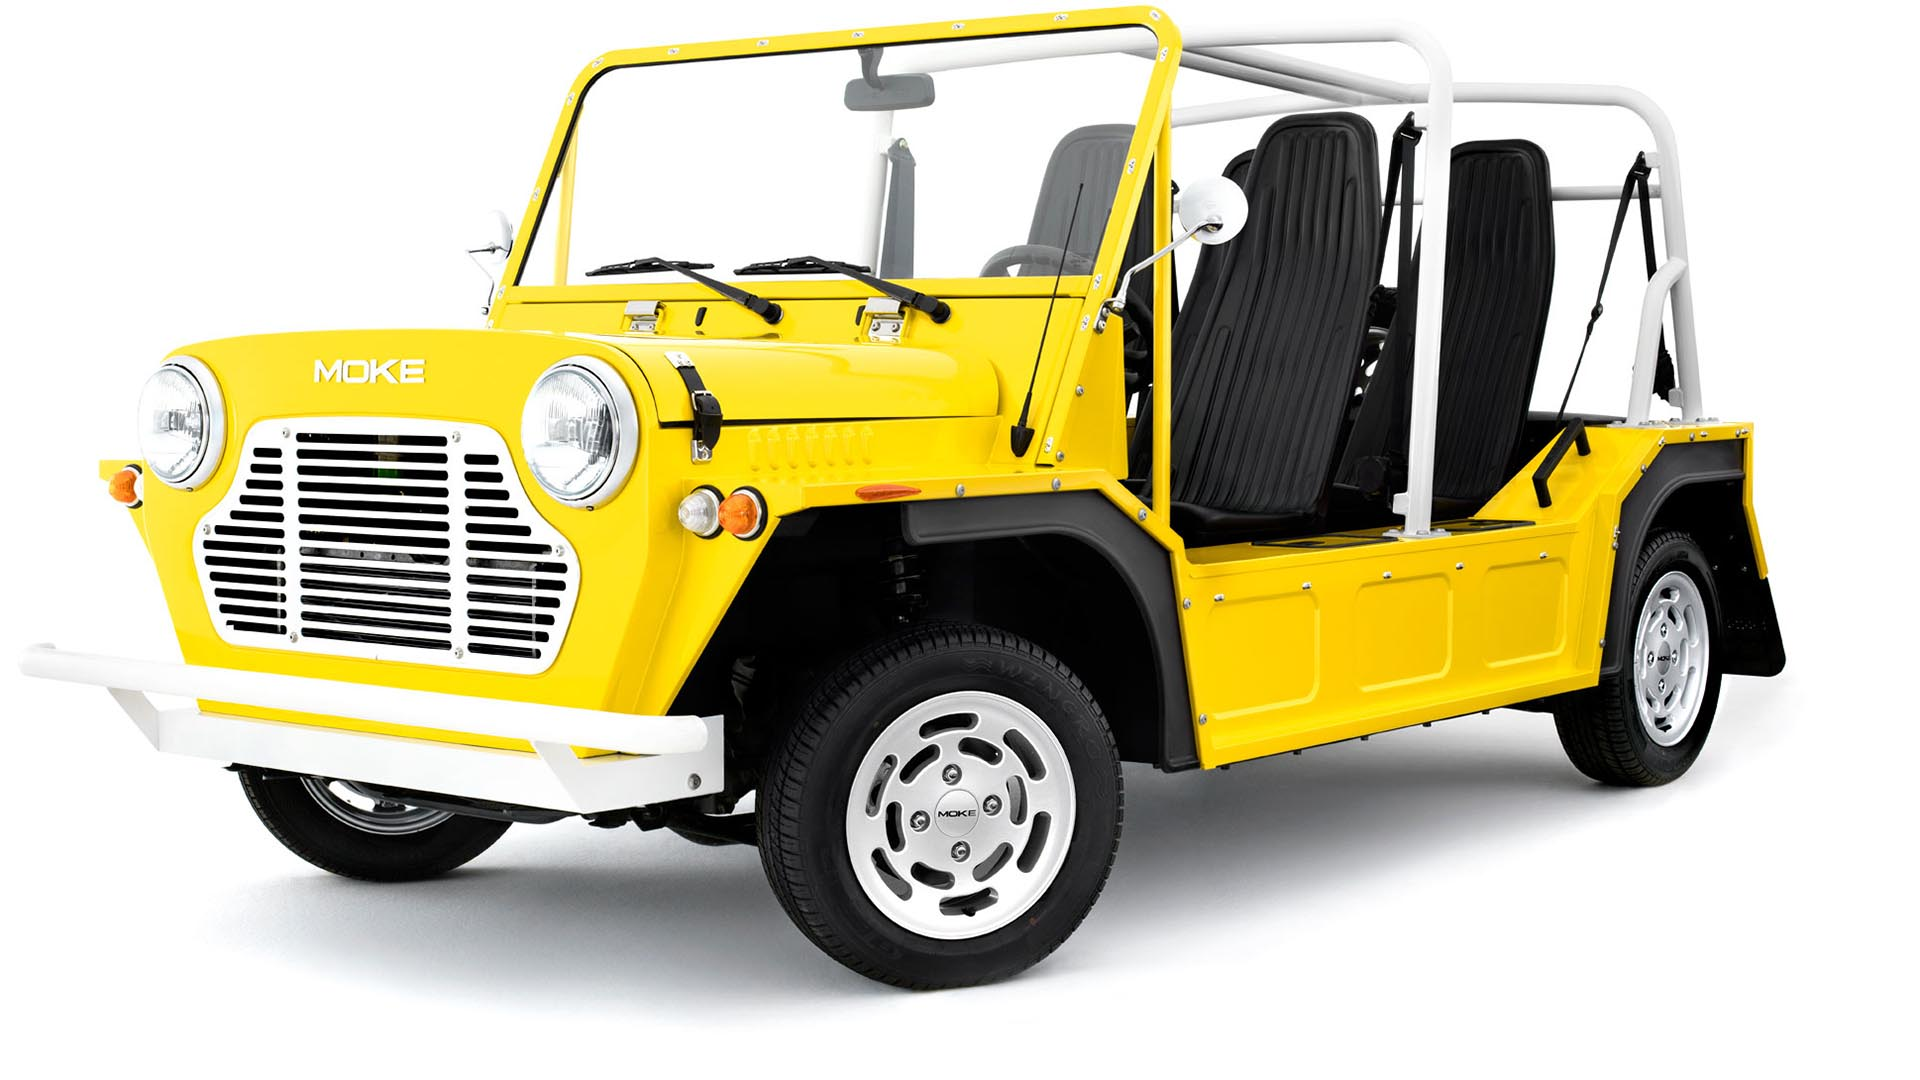 New Mini Moke on sale in the UK